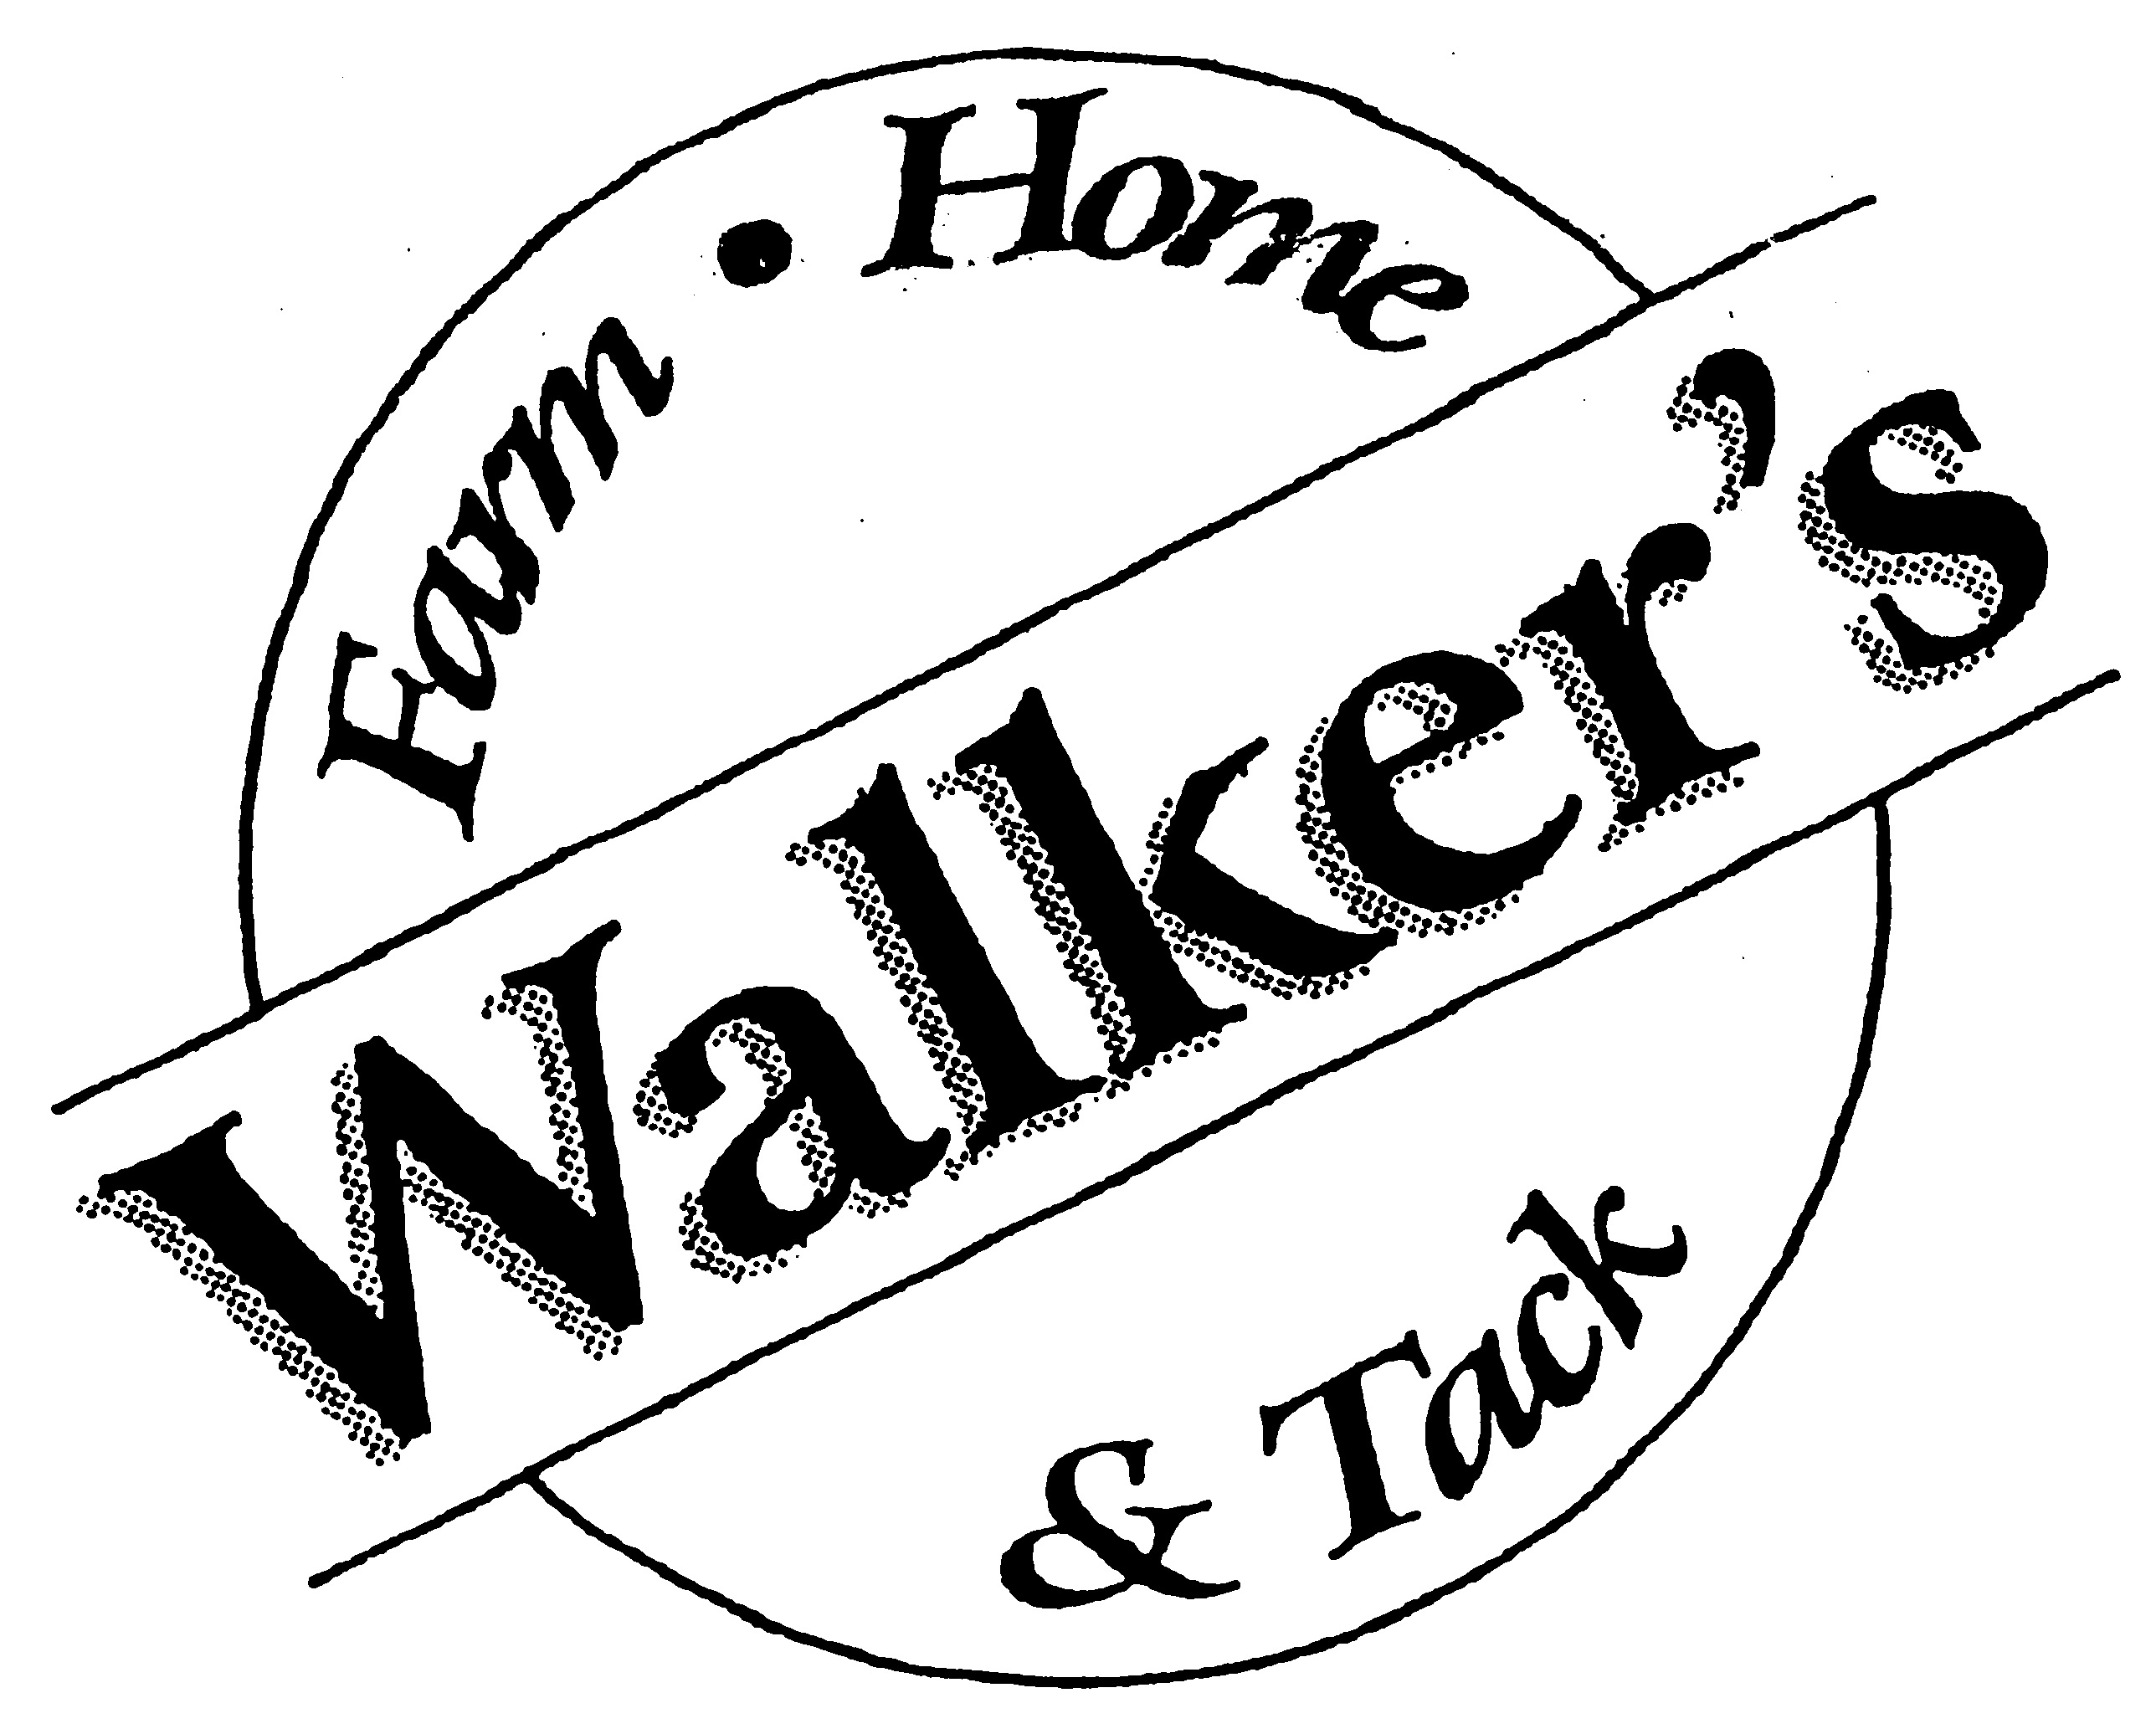 Walker's Farm, Home & Tack